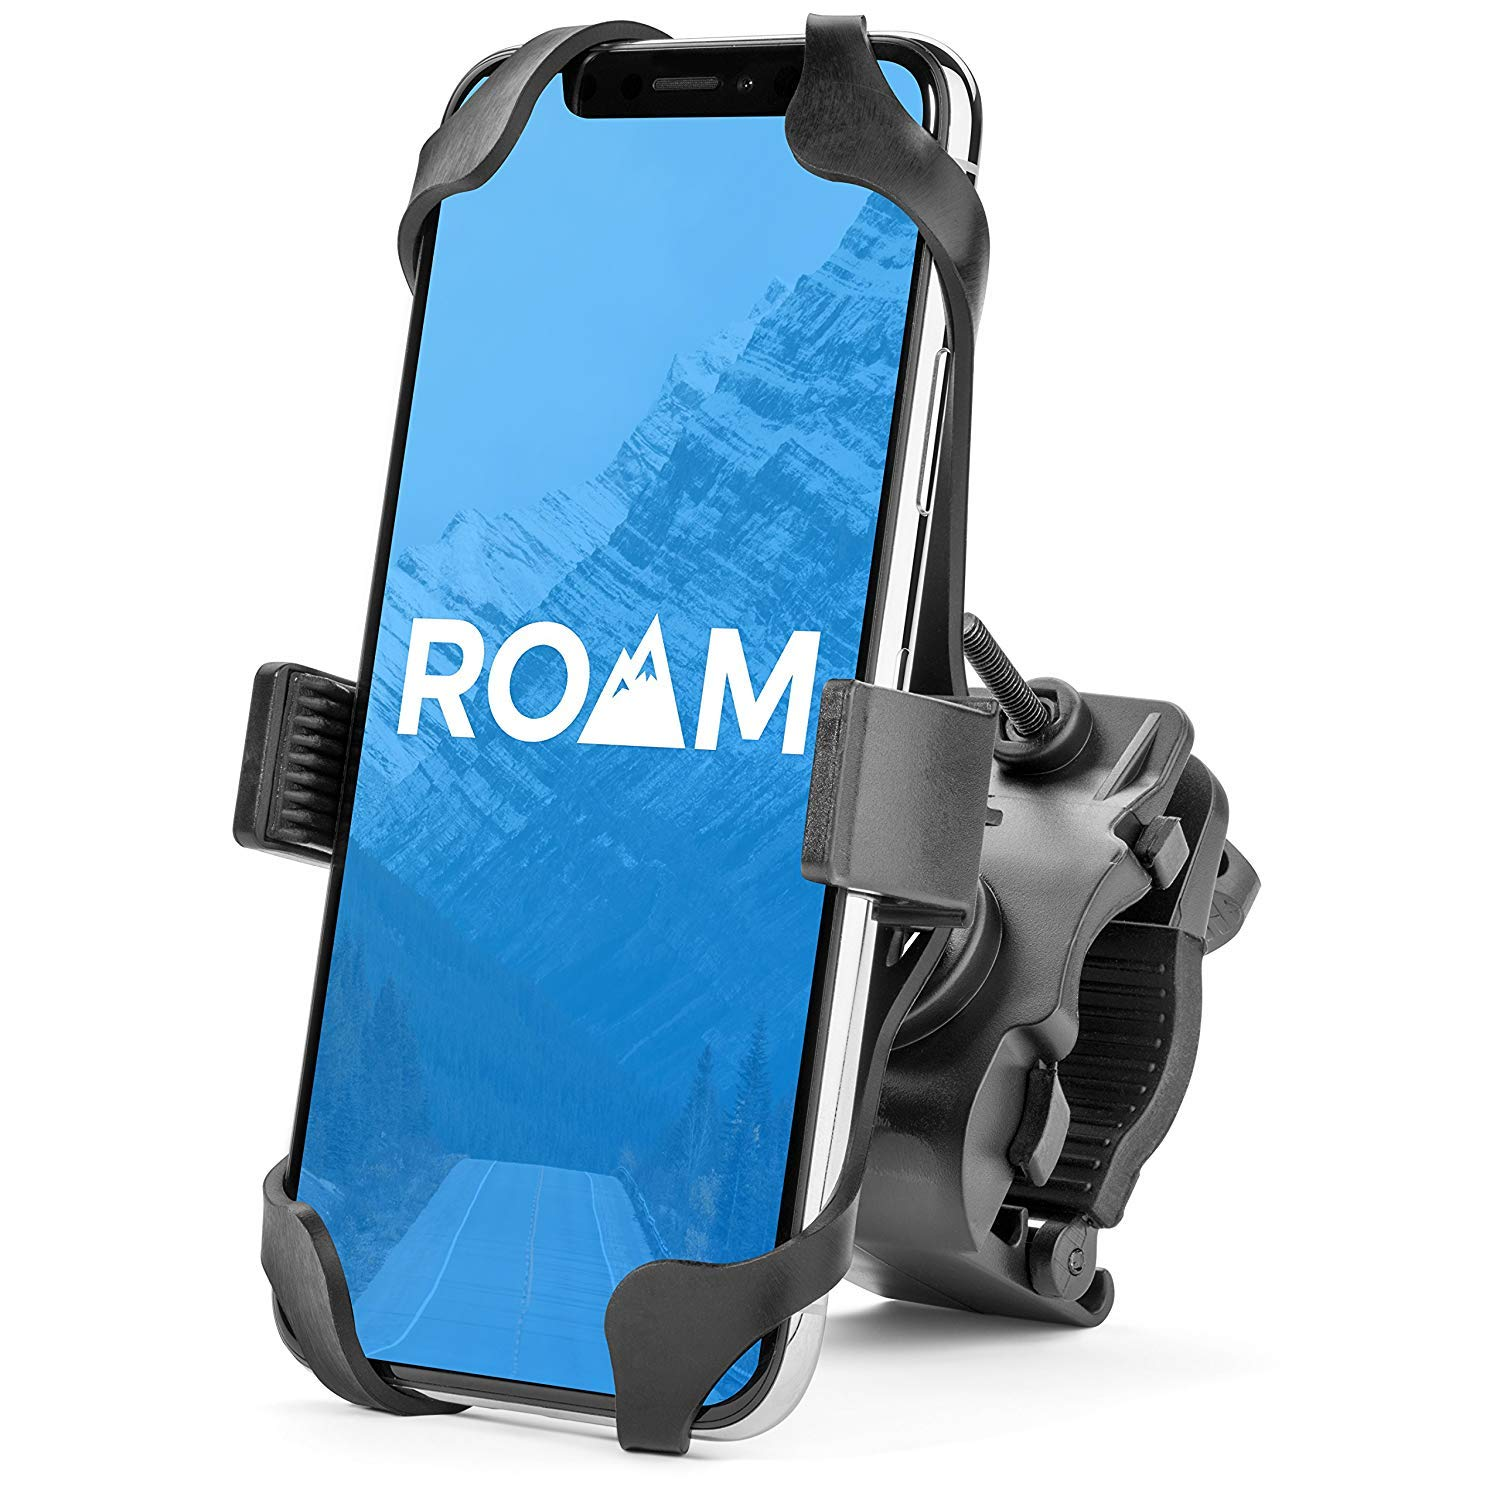 Roam Universal Premium Bike Phone Mount for Motorcycle - Bike Handlebars, Adjustable, Fits iPhone X, XR, 8 | 8 Plus, 7 | 7 Plus, iPhone 6s | 6s Plus, Galaxy, S9, S8, S7, Holds Phones Up to 3.5'' Wide by Roam